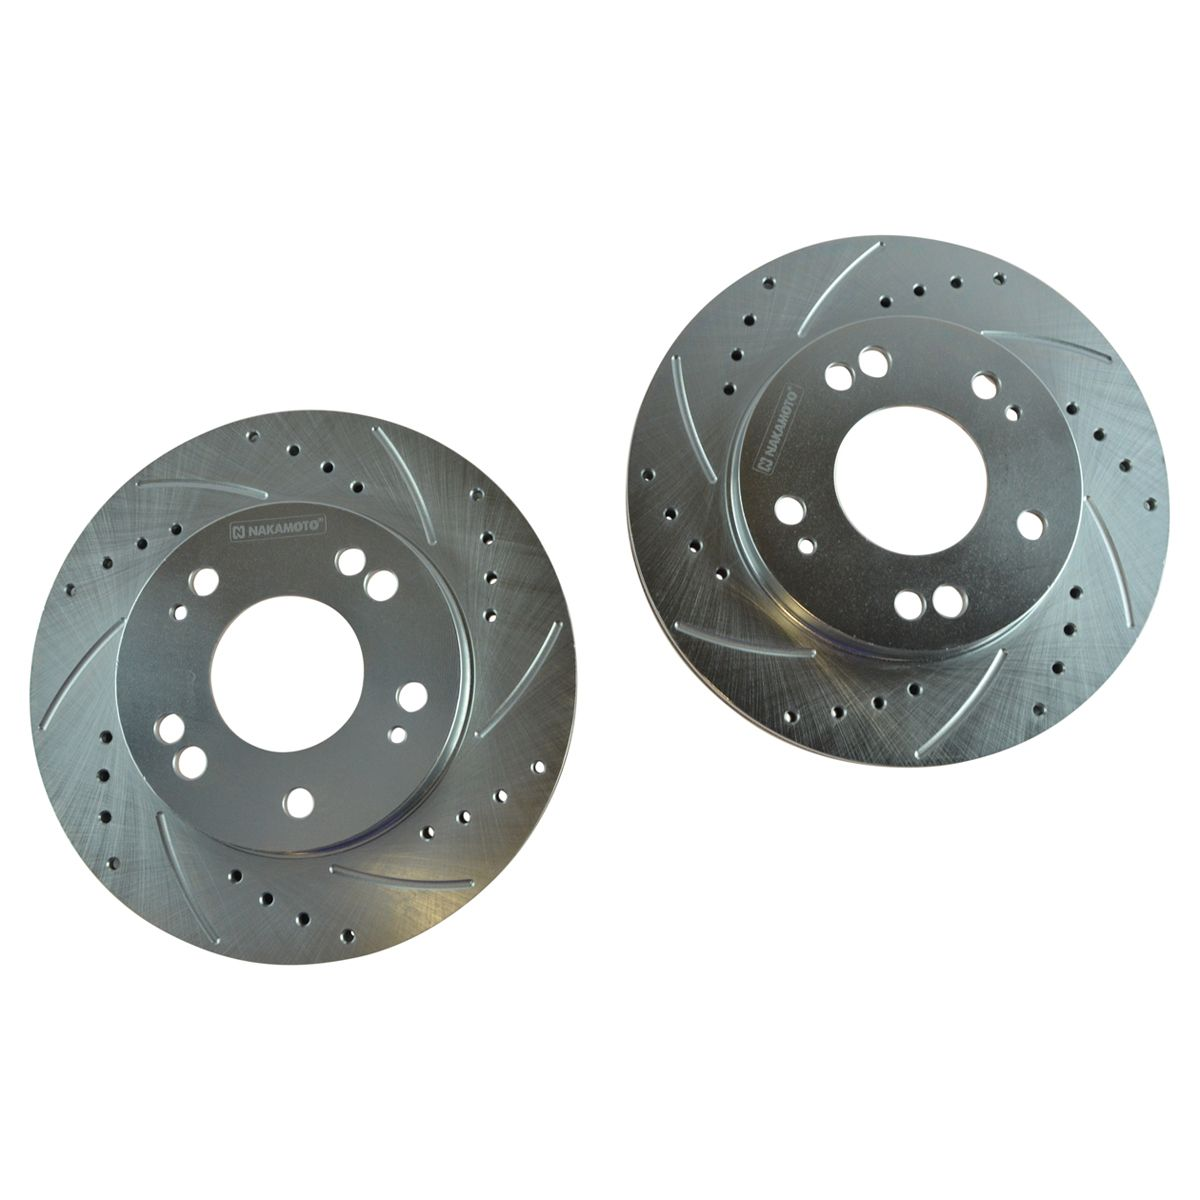 4 Semi-Metallic Pads High-End Front Kit 2 Cross-Drilled Disc Brake Rotors Fits:- 5lug